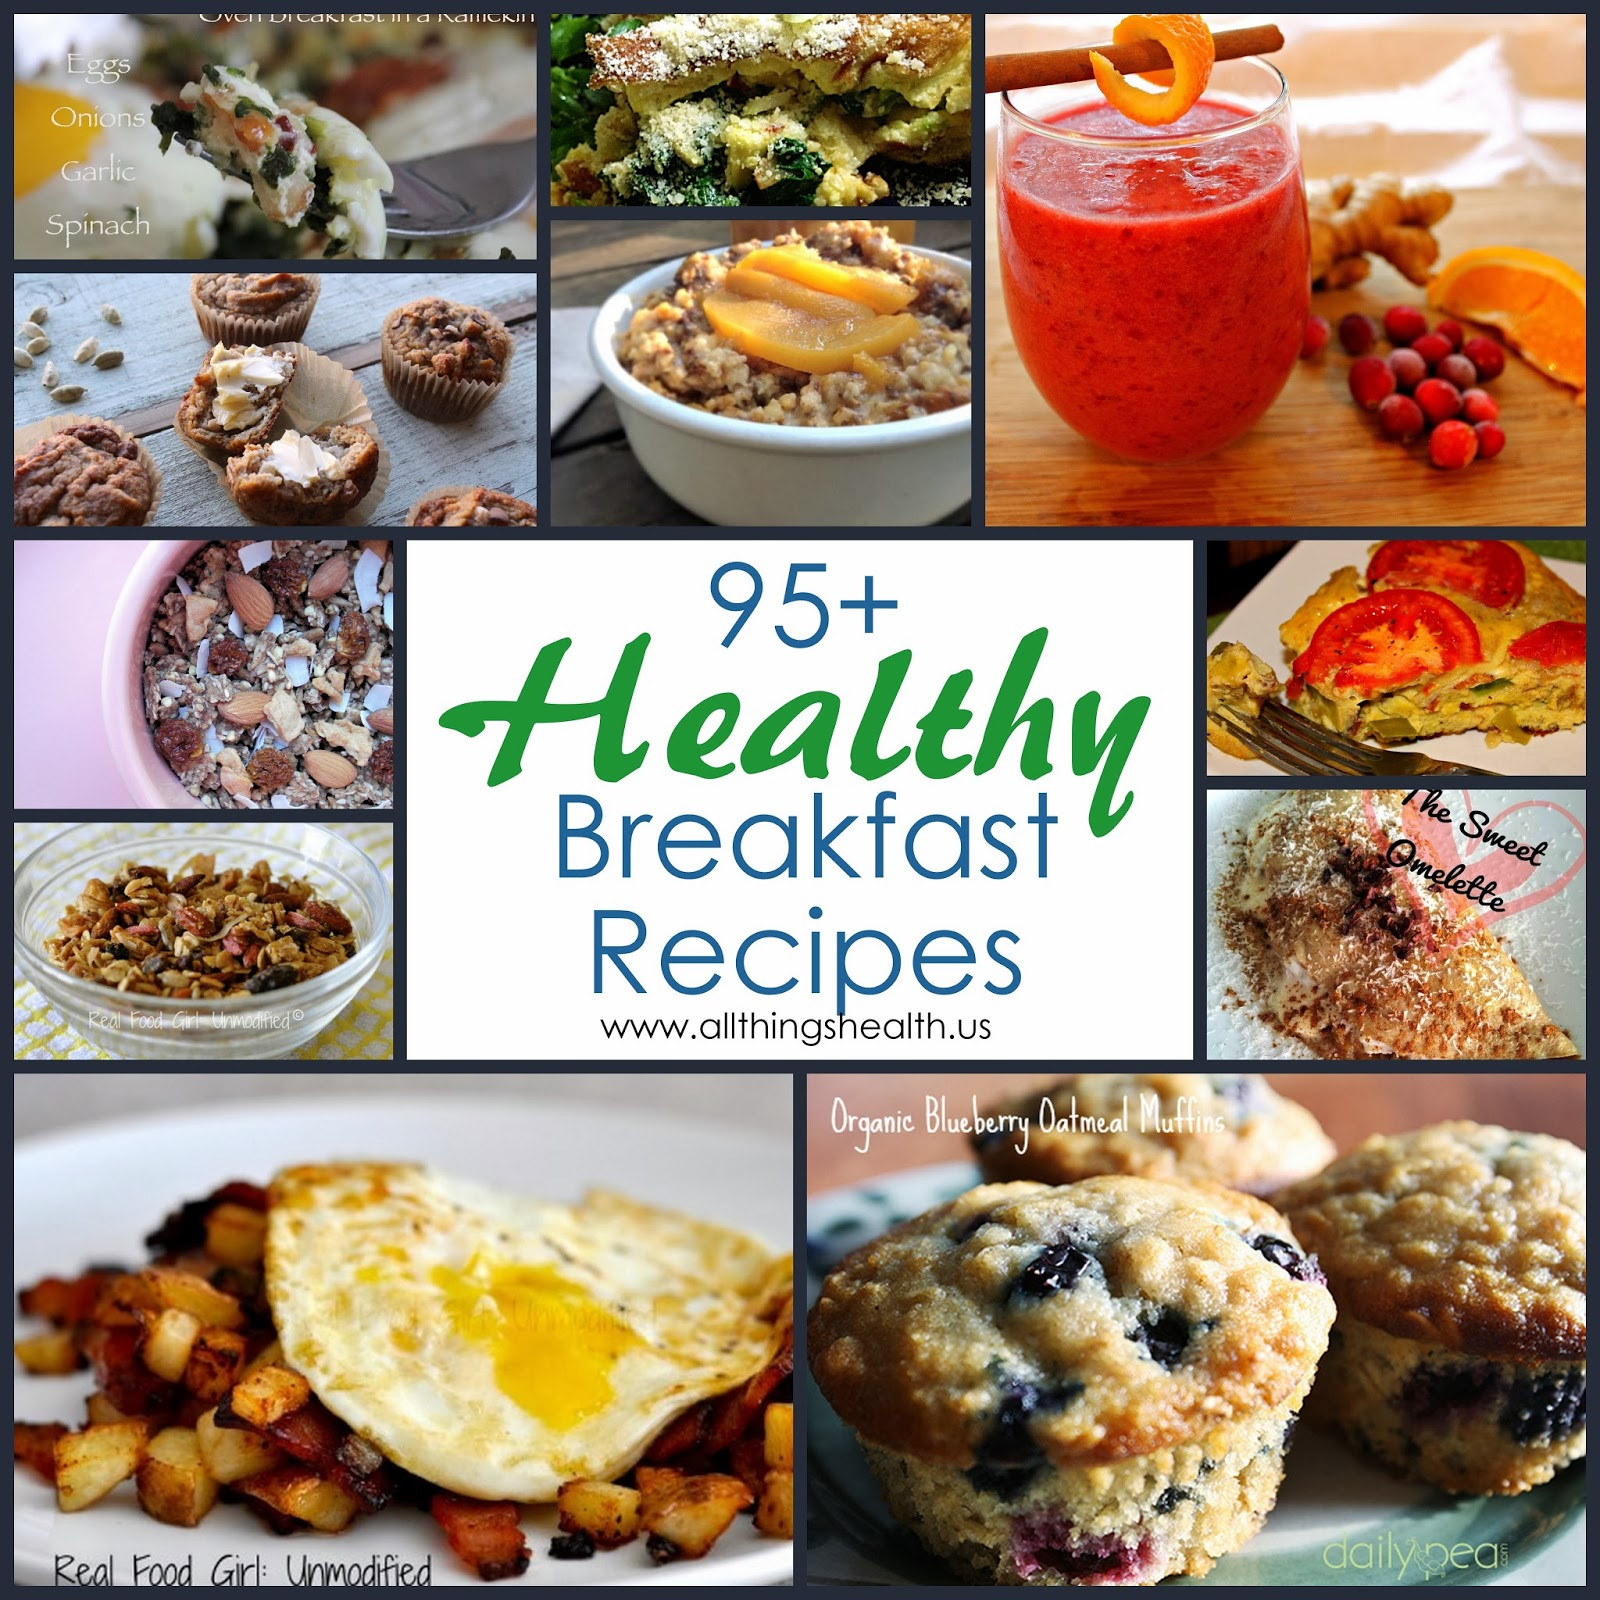 Healthy Recipes For Breakfast  All Things Health 95 Healthy Breakfast Recipes